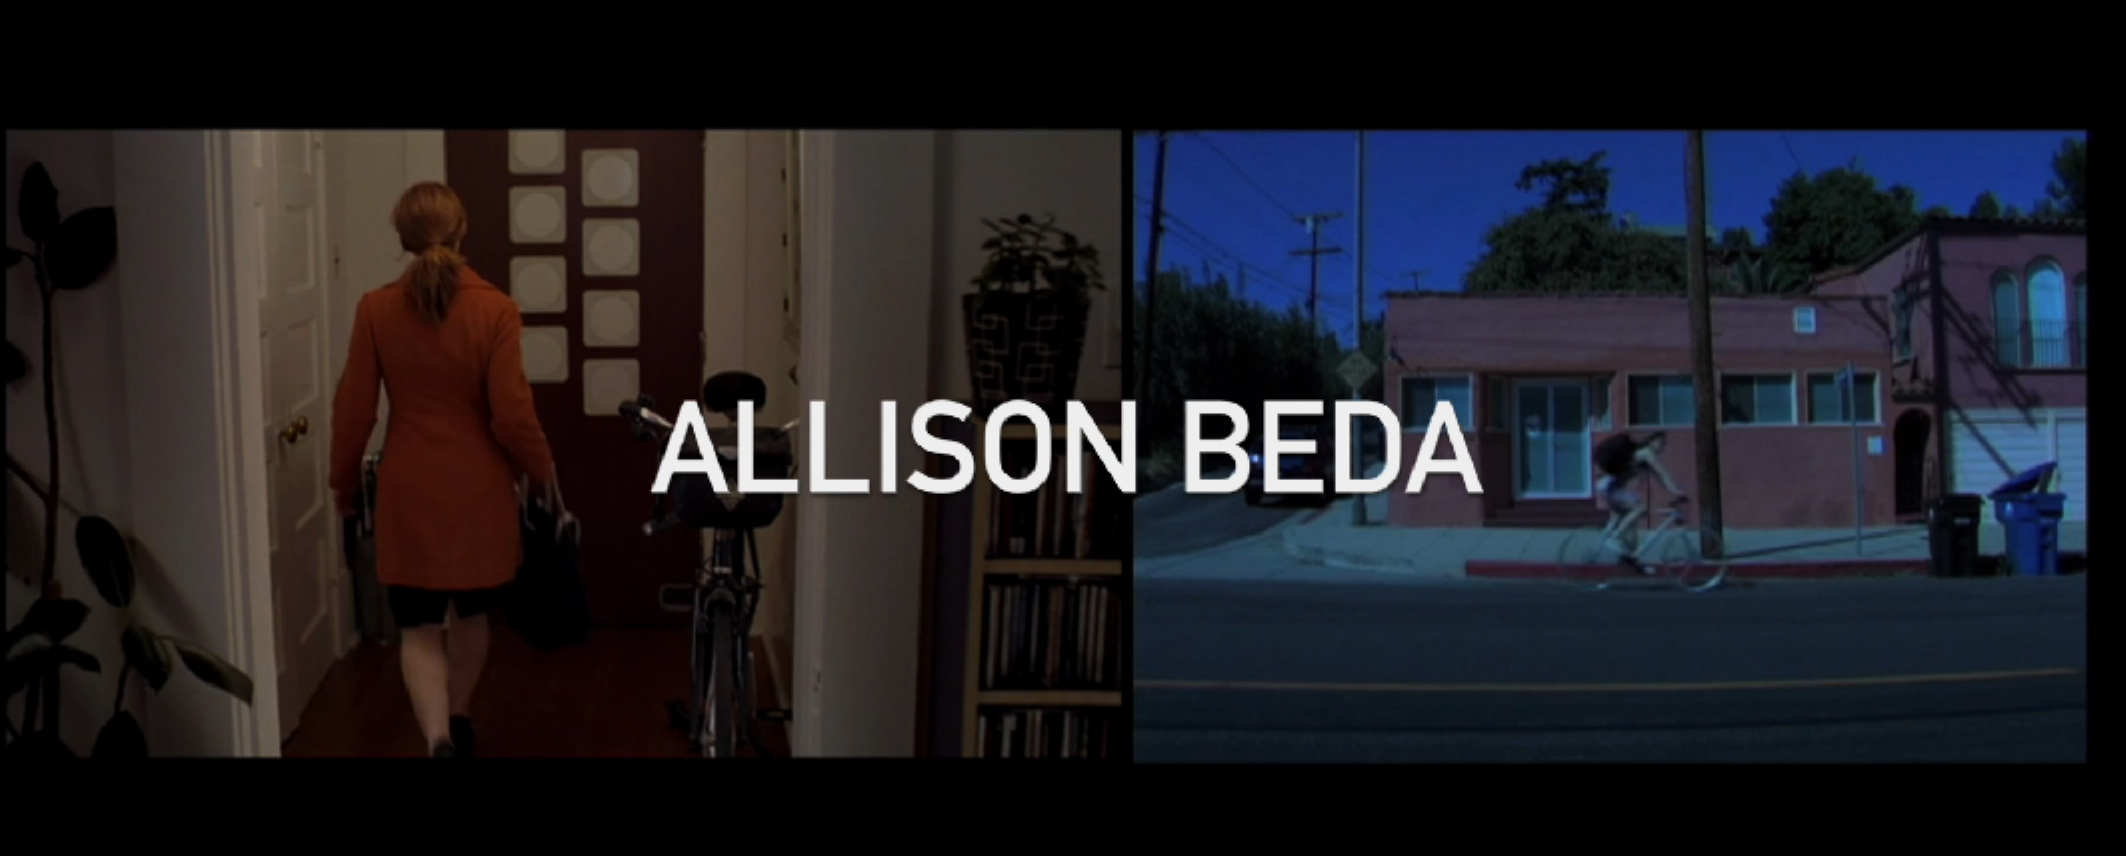 ALLISON BEDA - Parallel screen grab.jpeg